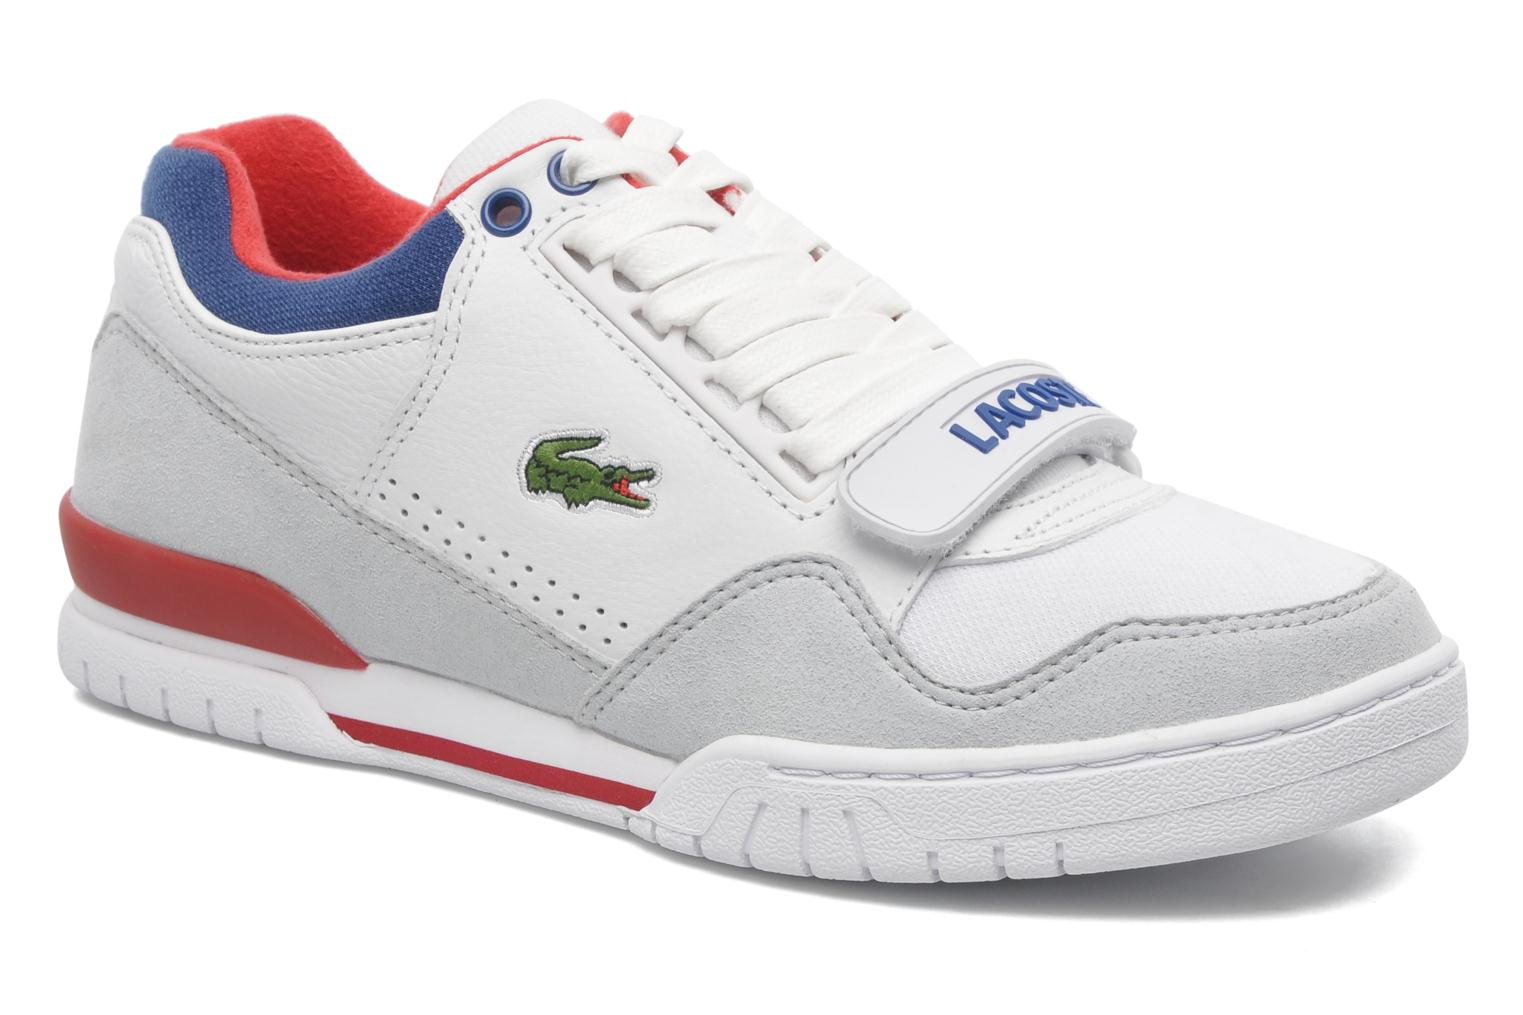 Homme Chaussure Lacoste Chaussure chaussure Scratch Scratch Lacoste xrWoCdBe